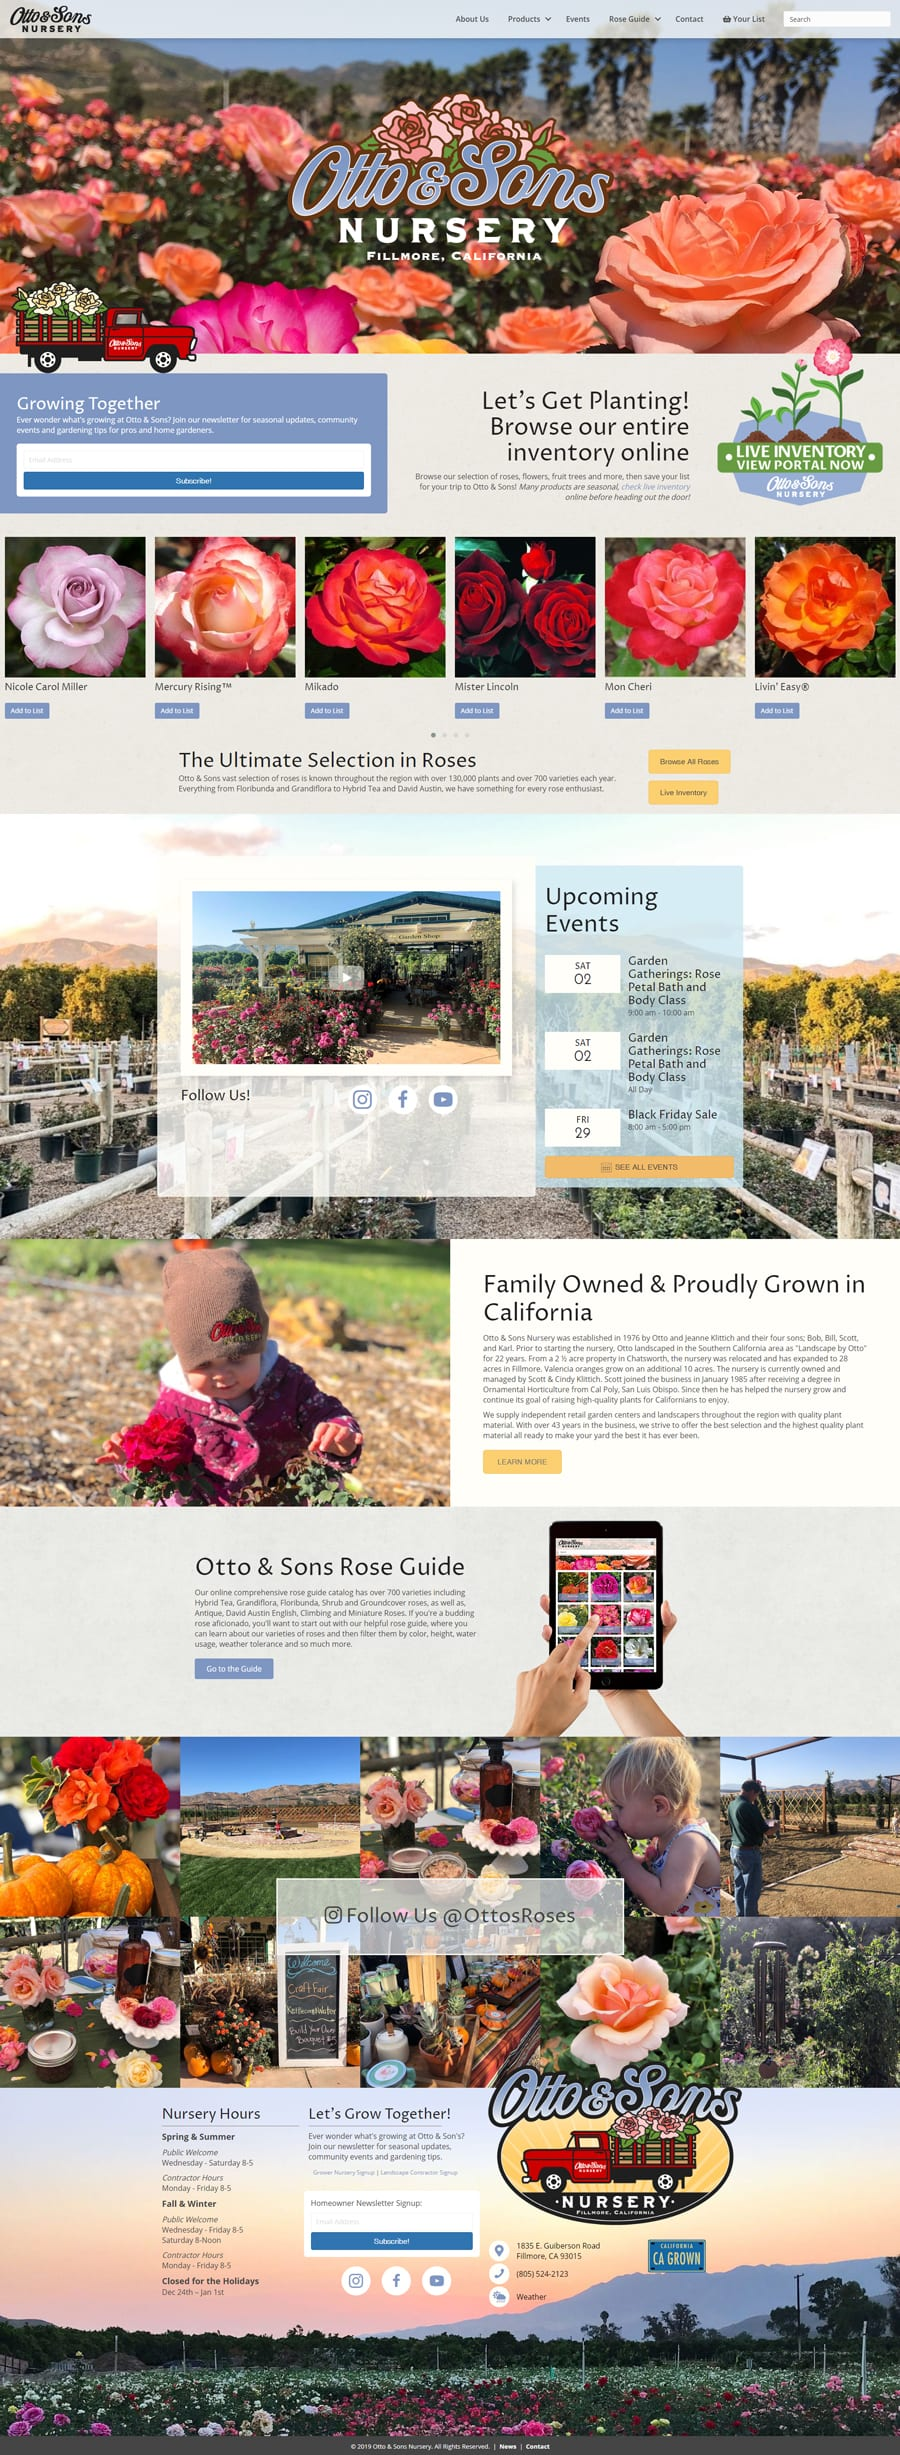 'Otto & Sons Nursery' Website Home Page